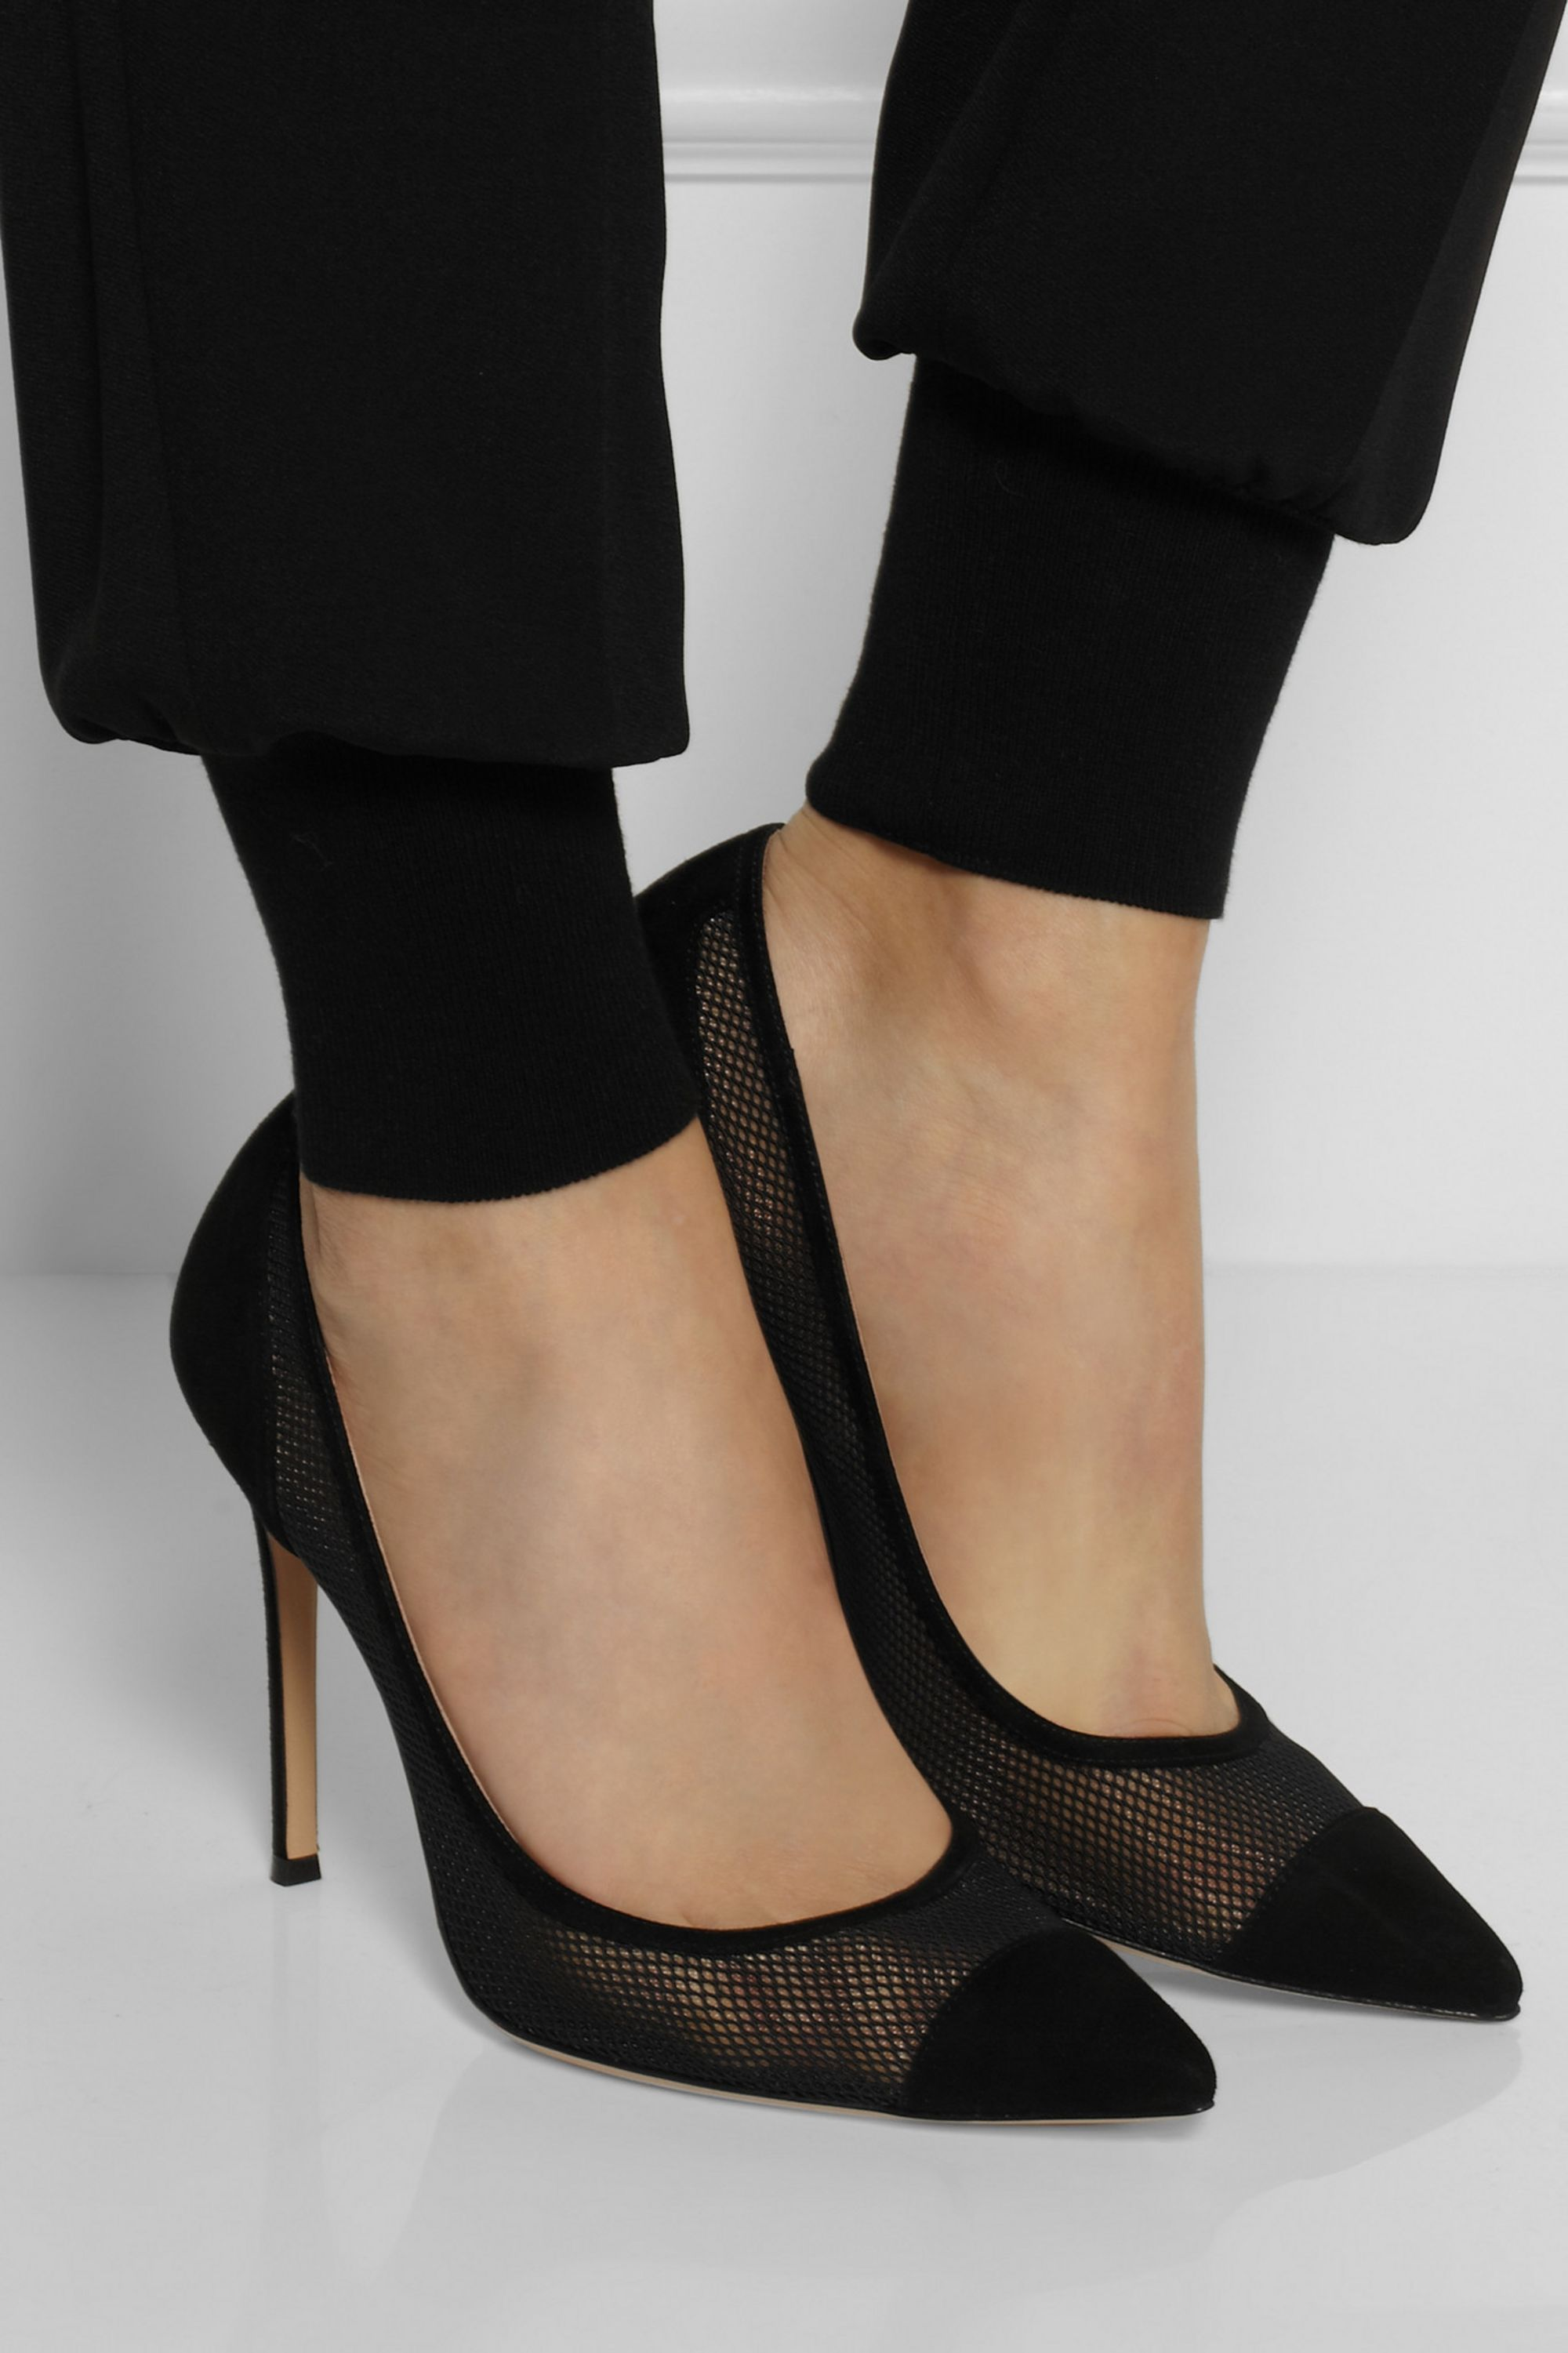 Gianvito Rossi Suede and mesh pumps